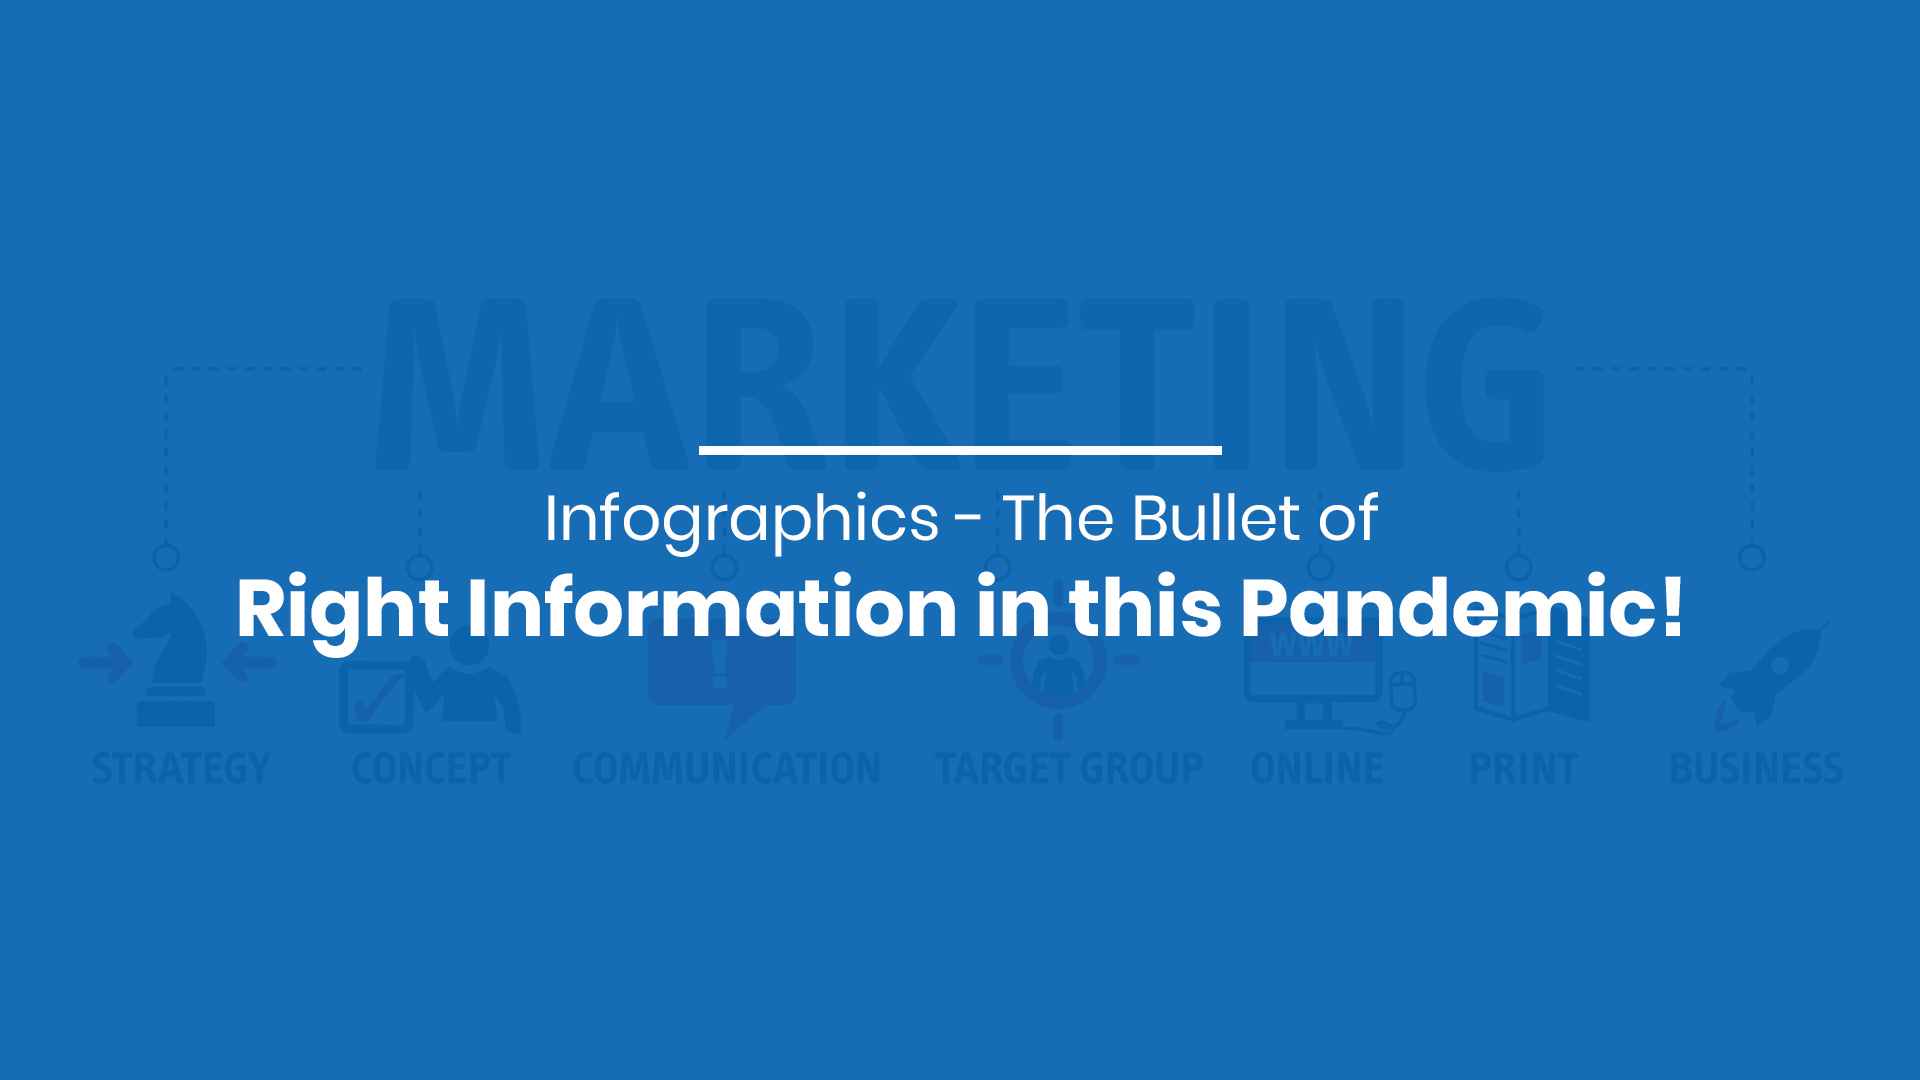 Infographics - The Bullet of Right Information in this Pandemic!